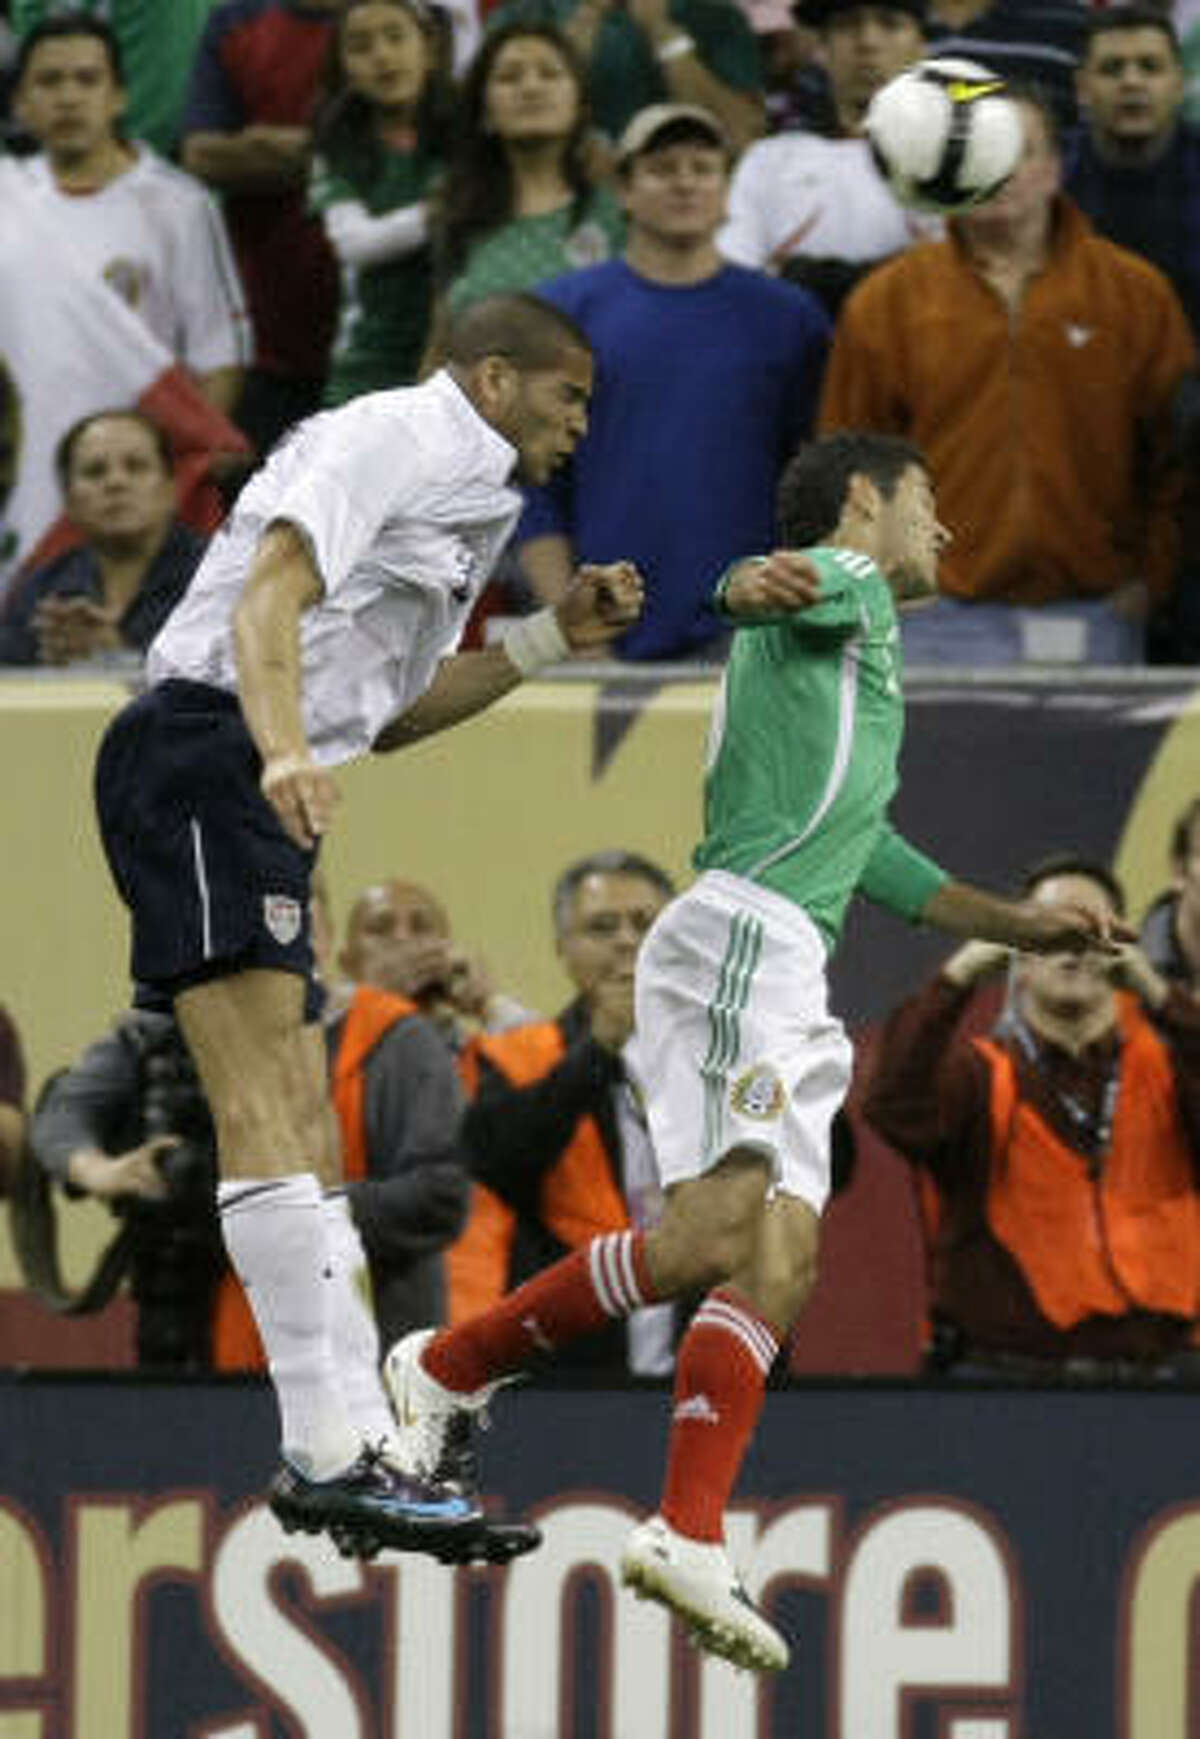 United States' defender Oguchi Onyewu, left, leaps over Mexico defender Israel Castro to head in a goal during the first half.